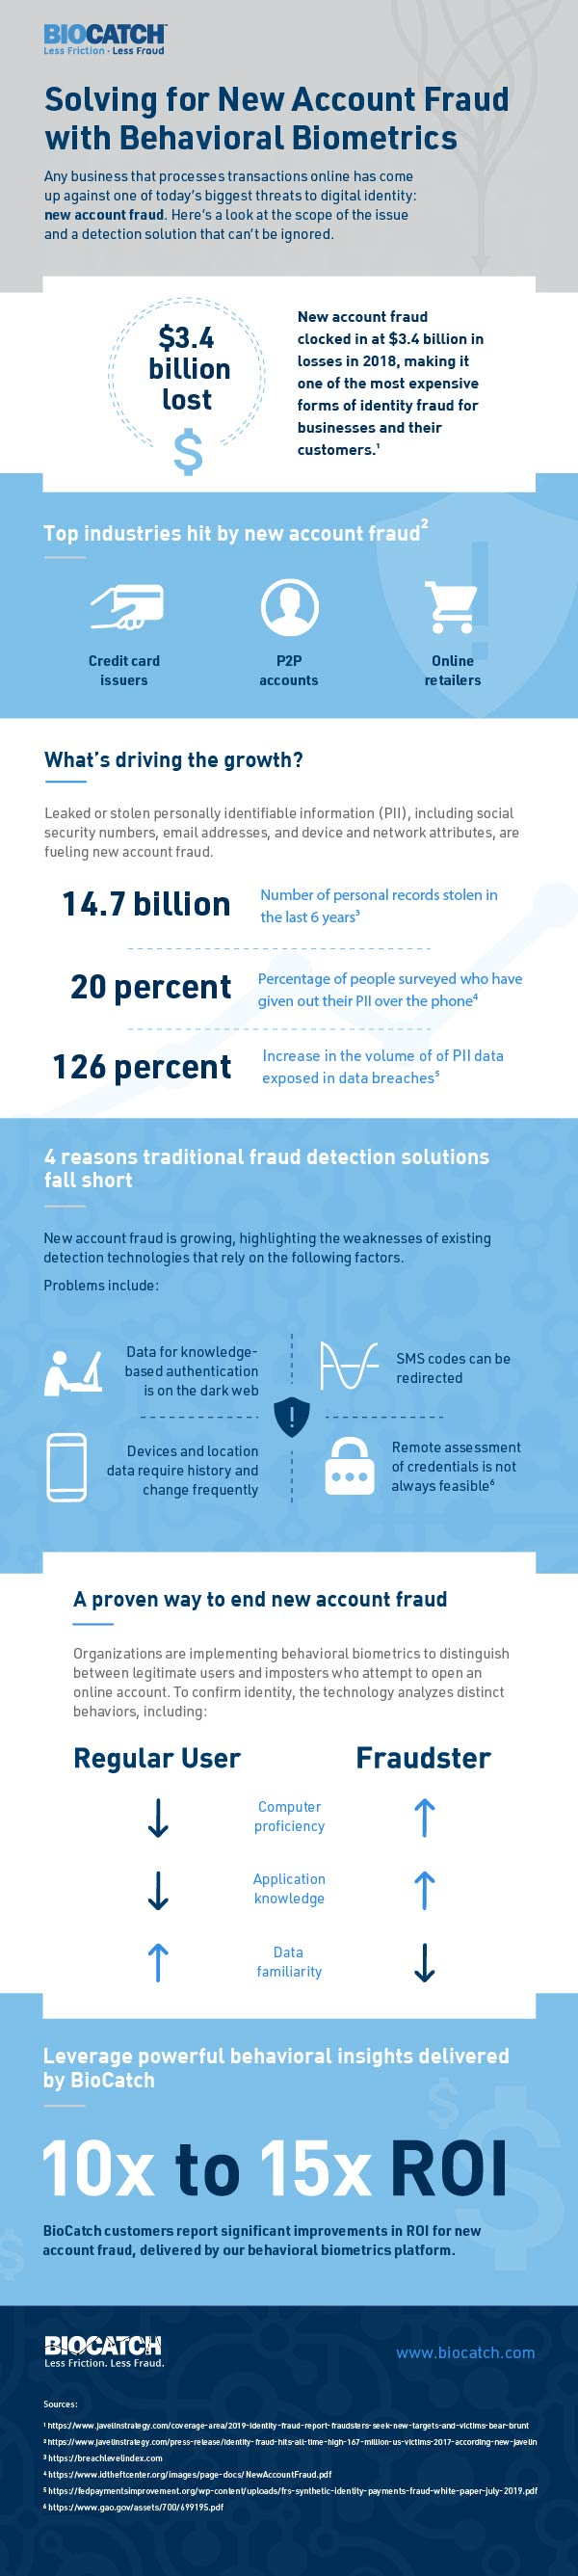 Solving for New Account Fraud: Today's Most Expensive Form of Identity Fraud [Infographic]